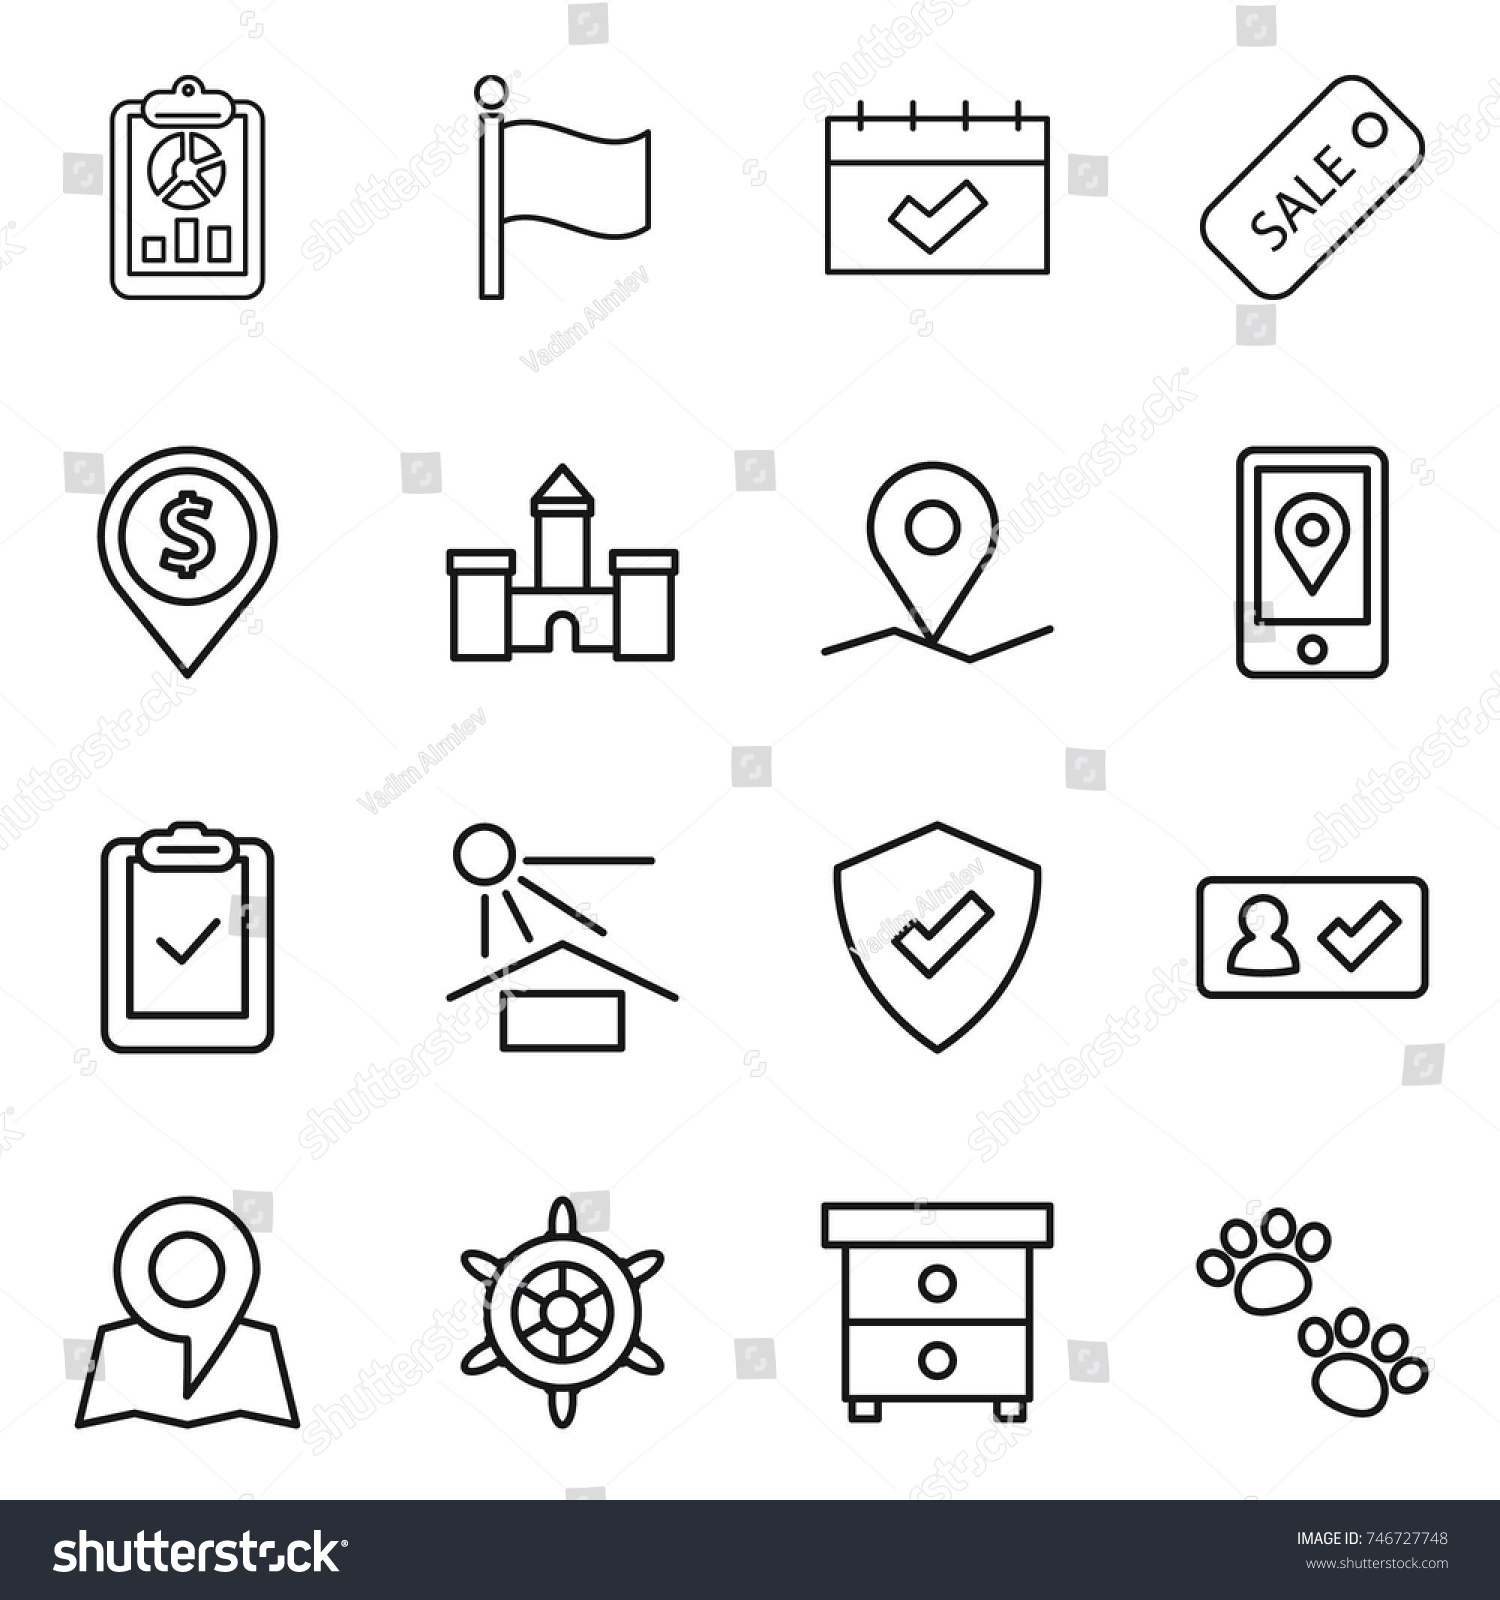 Thin line icon set report flag stock vector 746727748 shutterstock thin line icon set report flag calendar sale dollar pin biocorpaavc Image collections